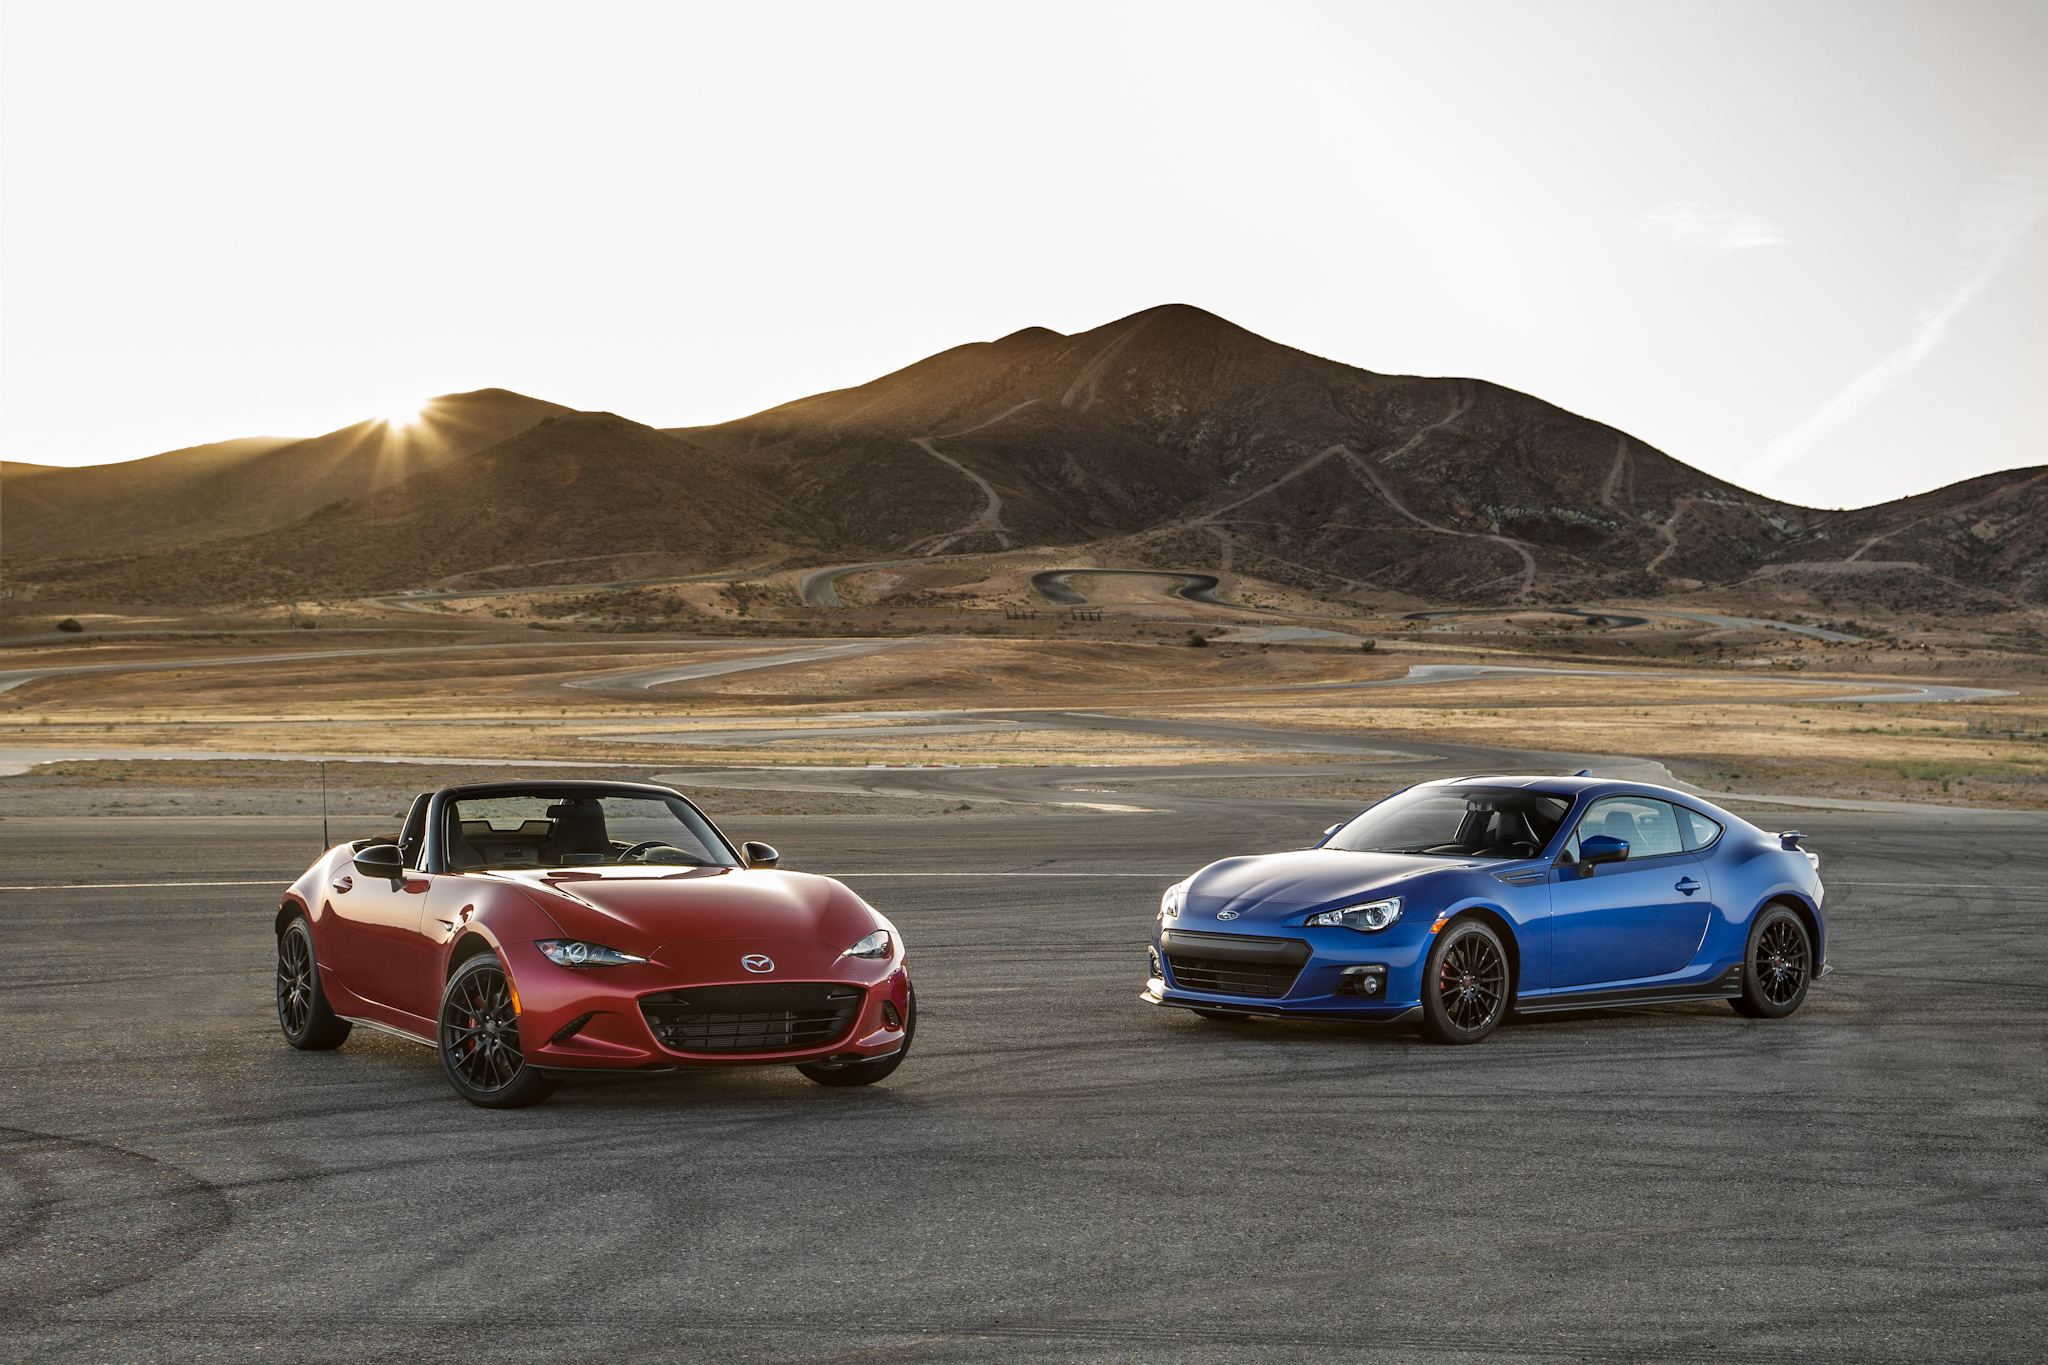 2016 Mazda MX-5 Miata vs  2015 Subaru BRZ Comparison - Motor